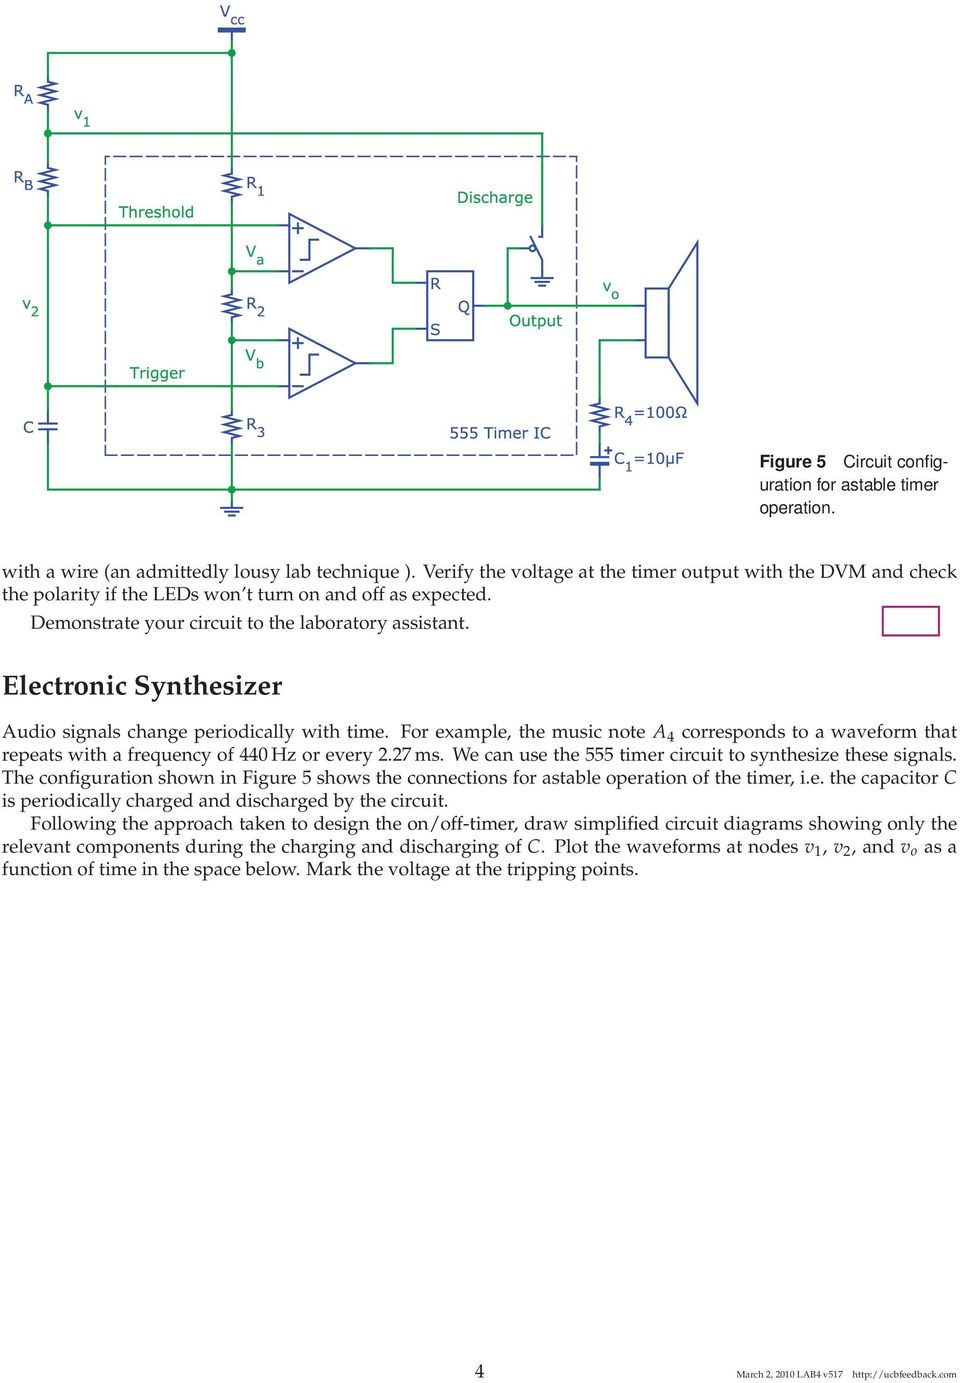 The 555 Timer Ic Uc Berkeley Eecs Department 40 42 100 Lab Electronic Hobby Circuits Ne Internal Diagram Synthesizer Audio Signals Change Periodically With Time For Example Music Note A 5 Figure 6 Circuit